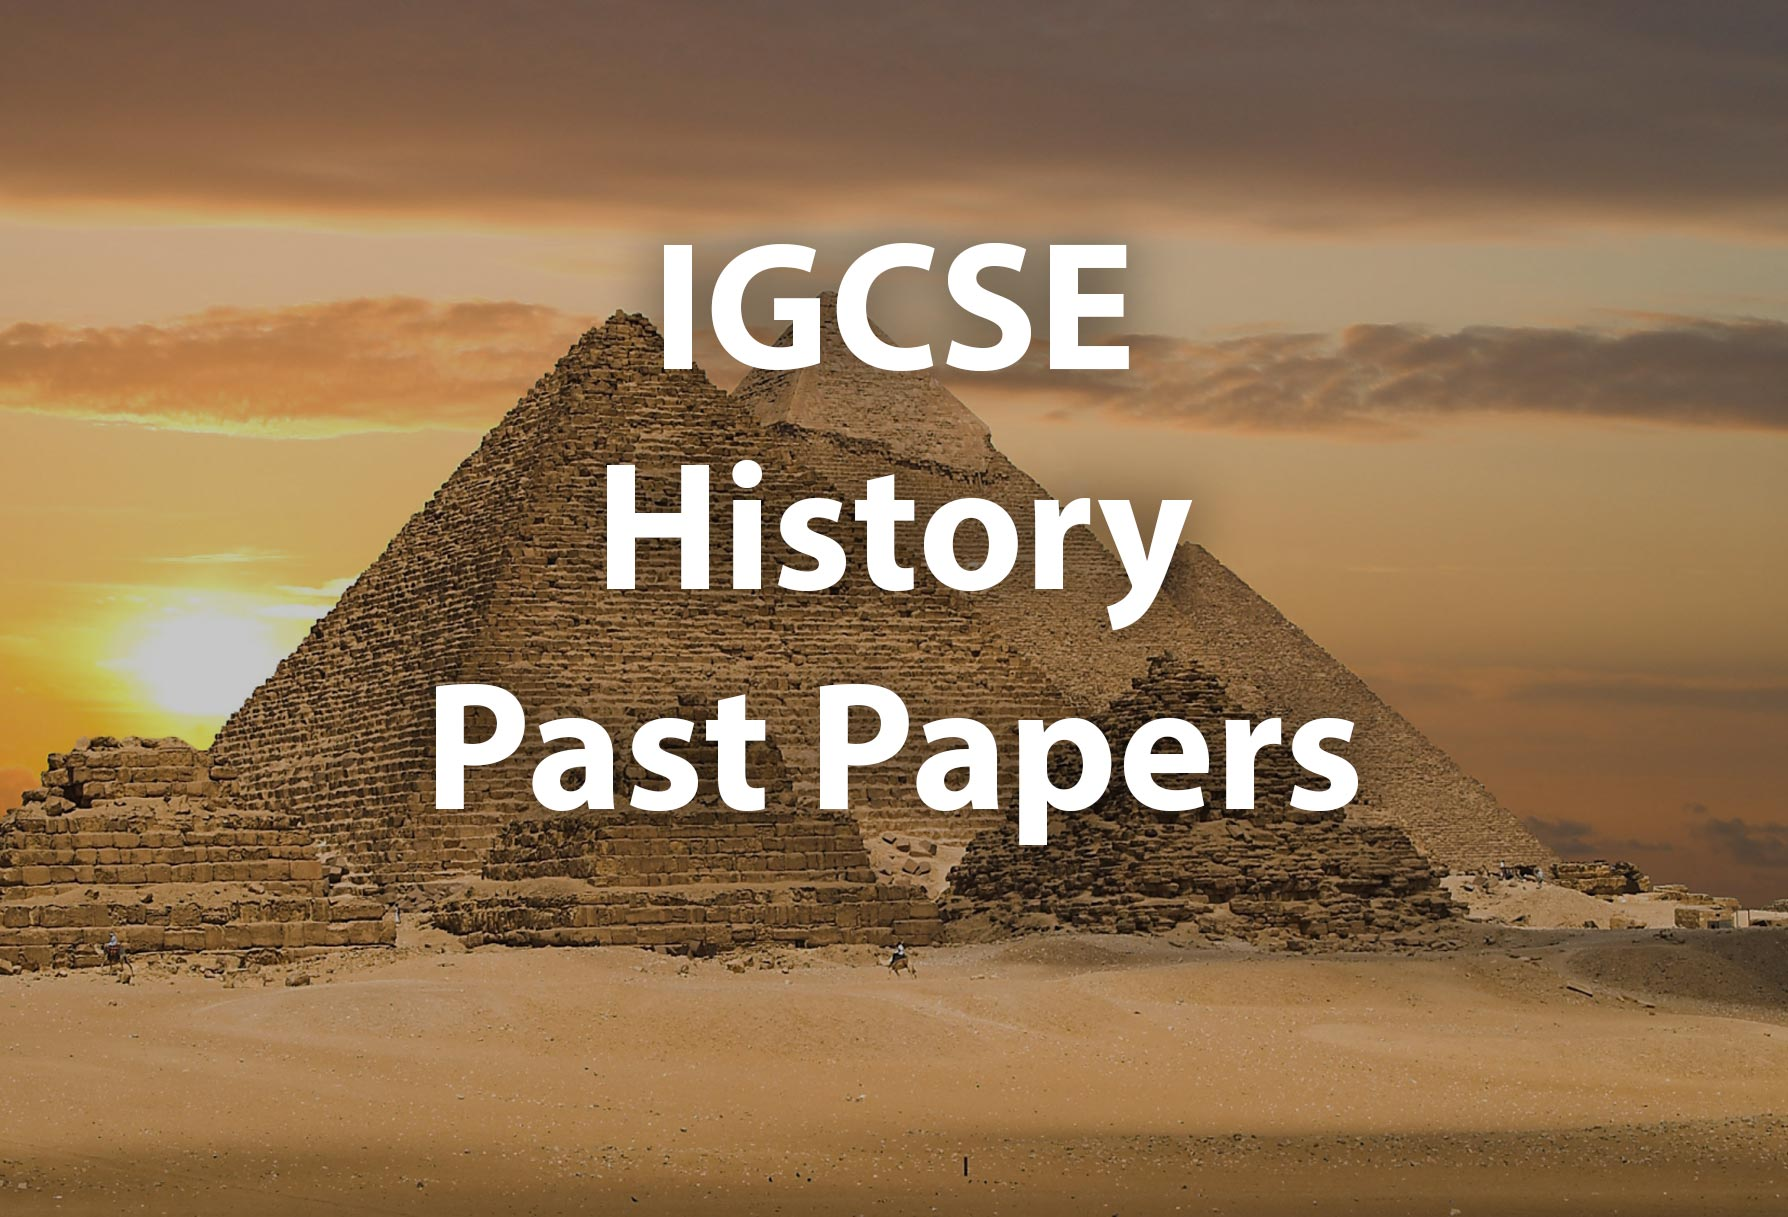 IGCSE History Past Papers